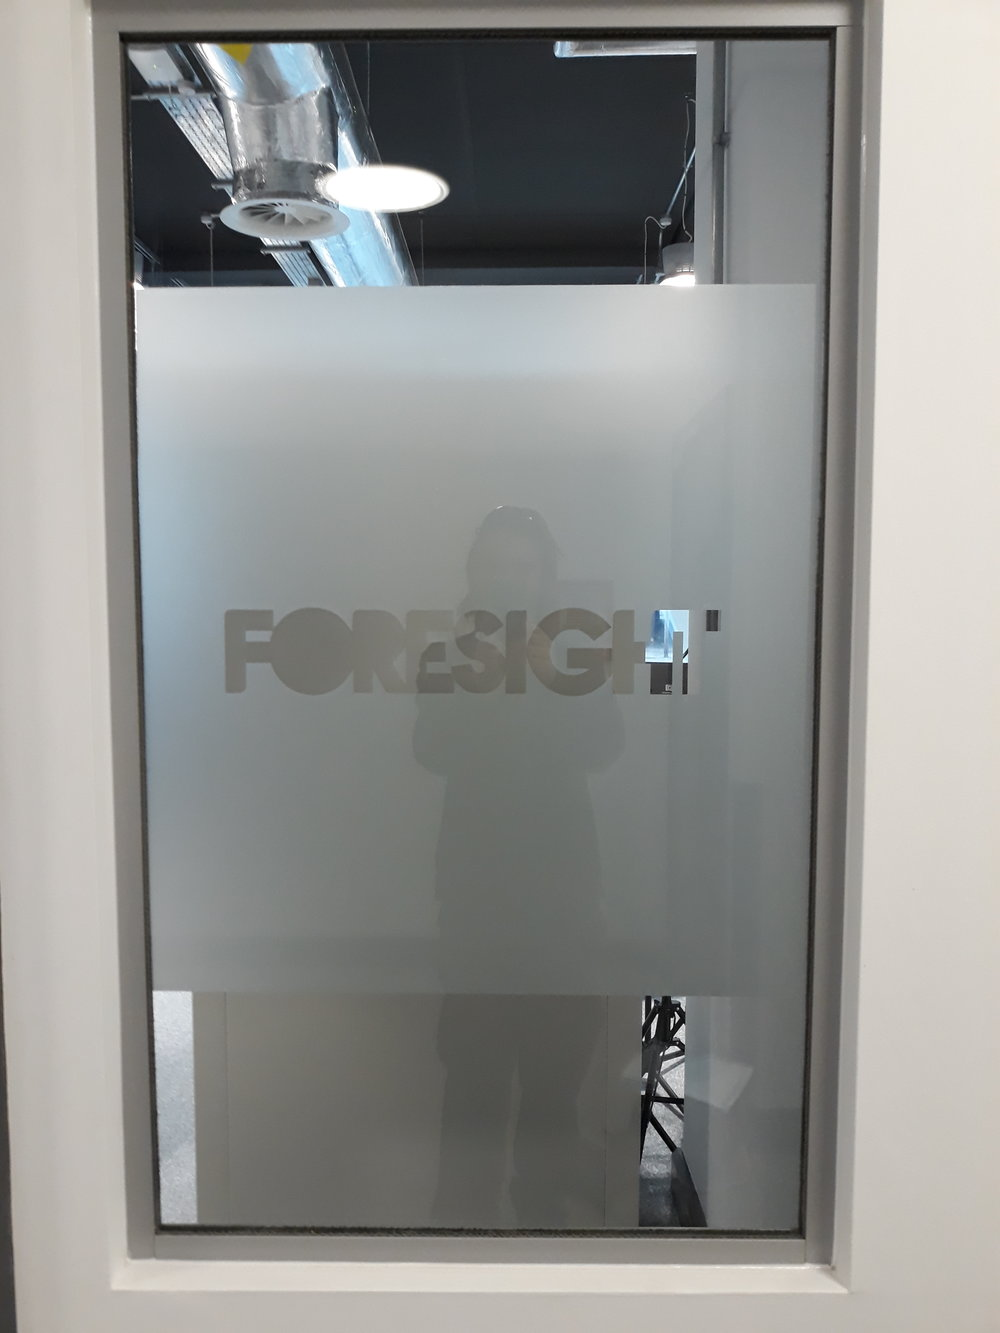 FORESIGHT   Internally fitted frosted window graphics.